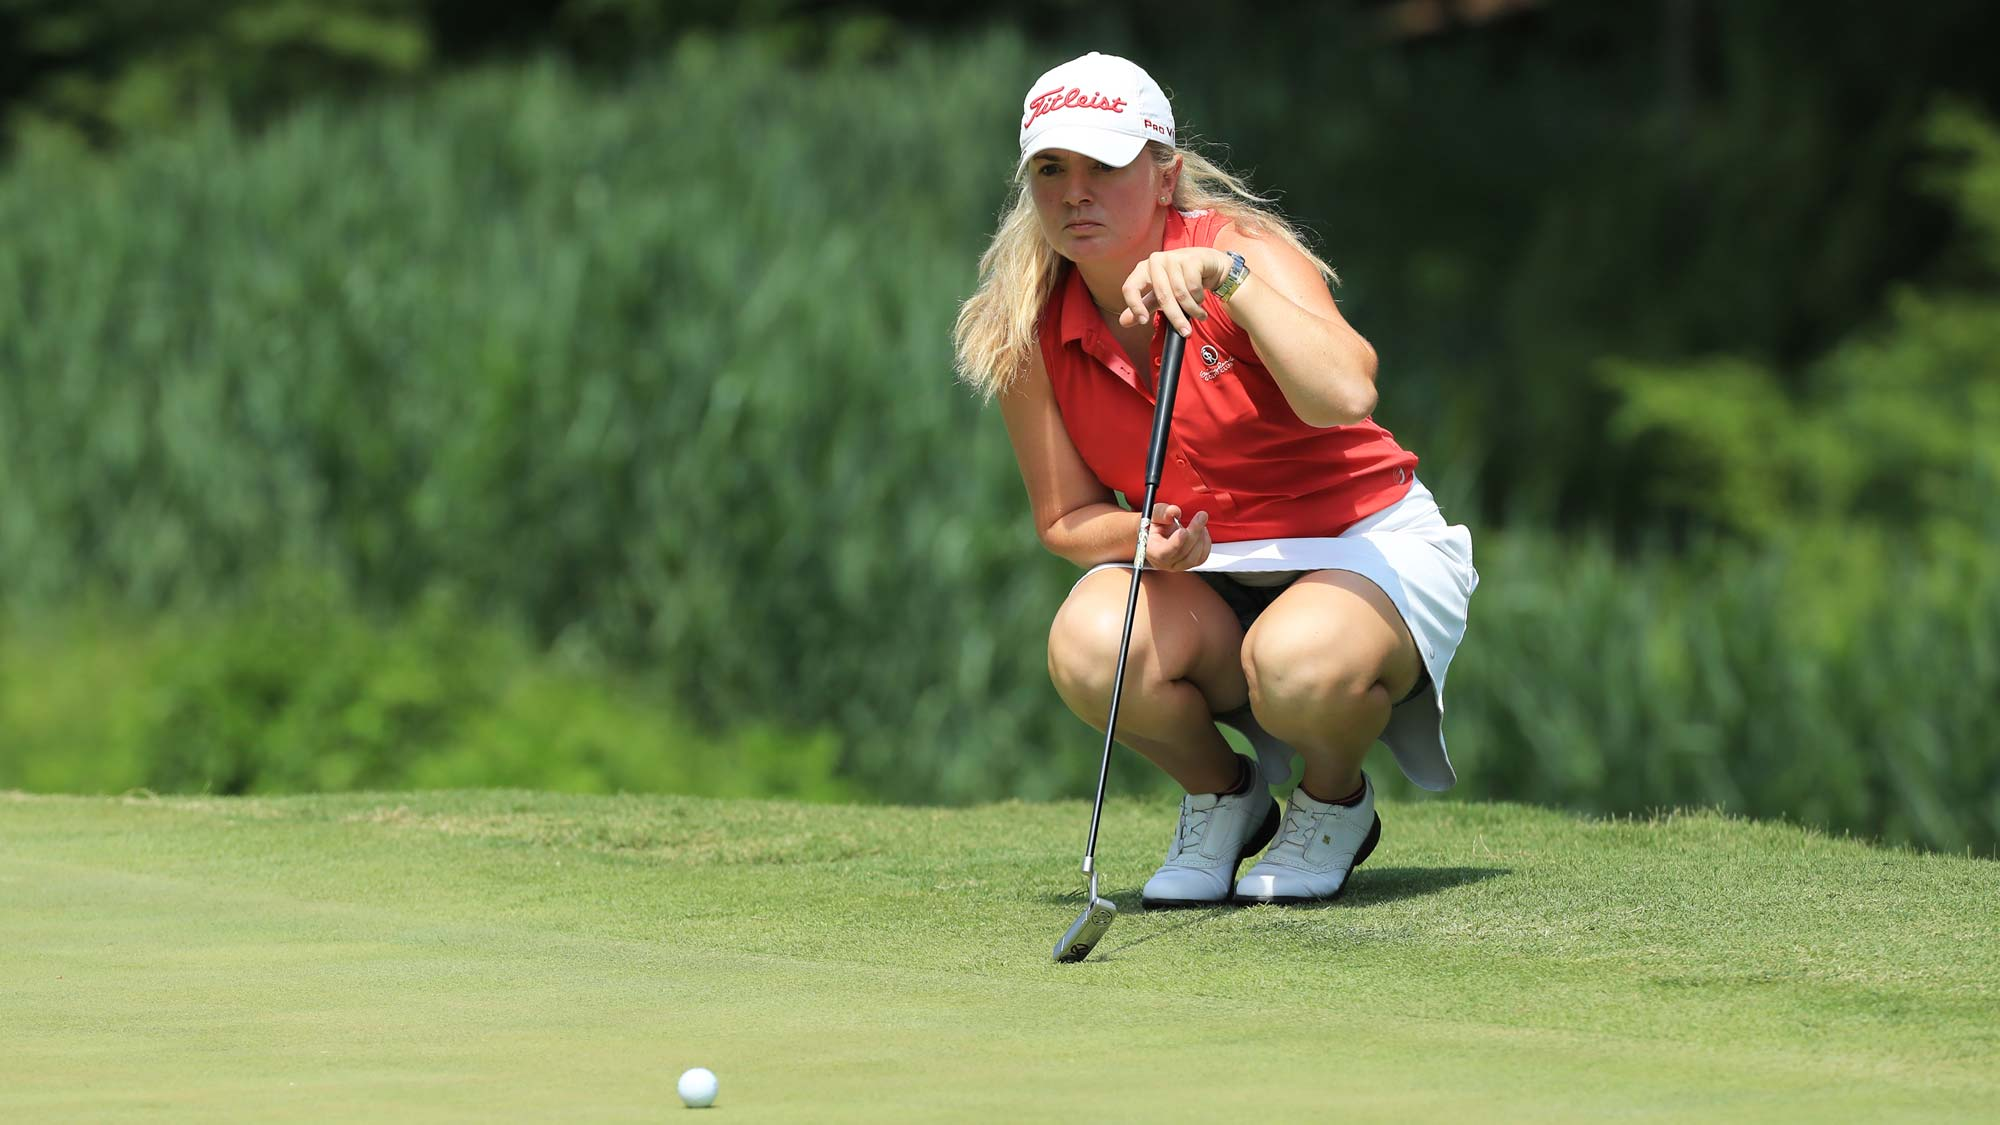 Bronte Law of England lines up her putt on the third hole during the first round of the Pure Silk Championship